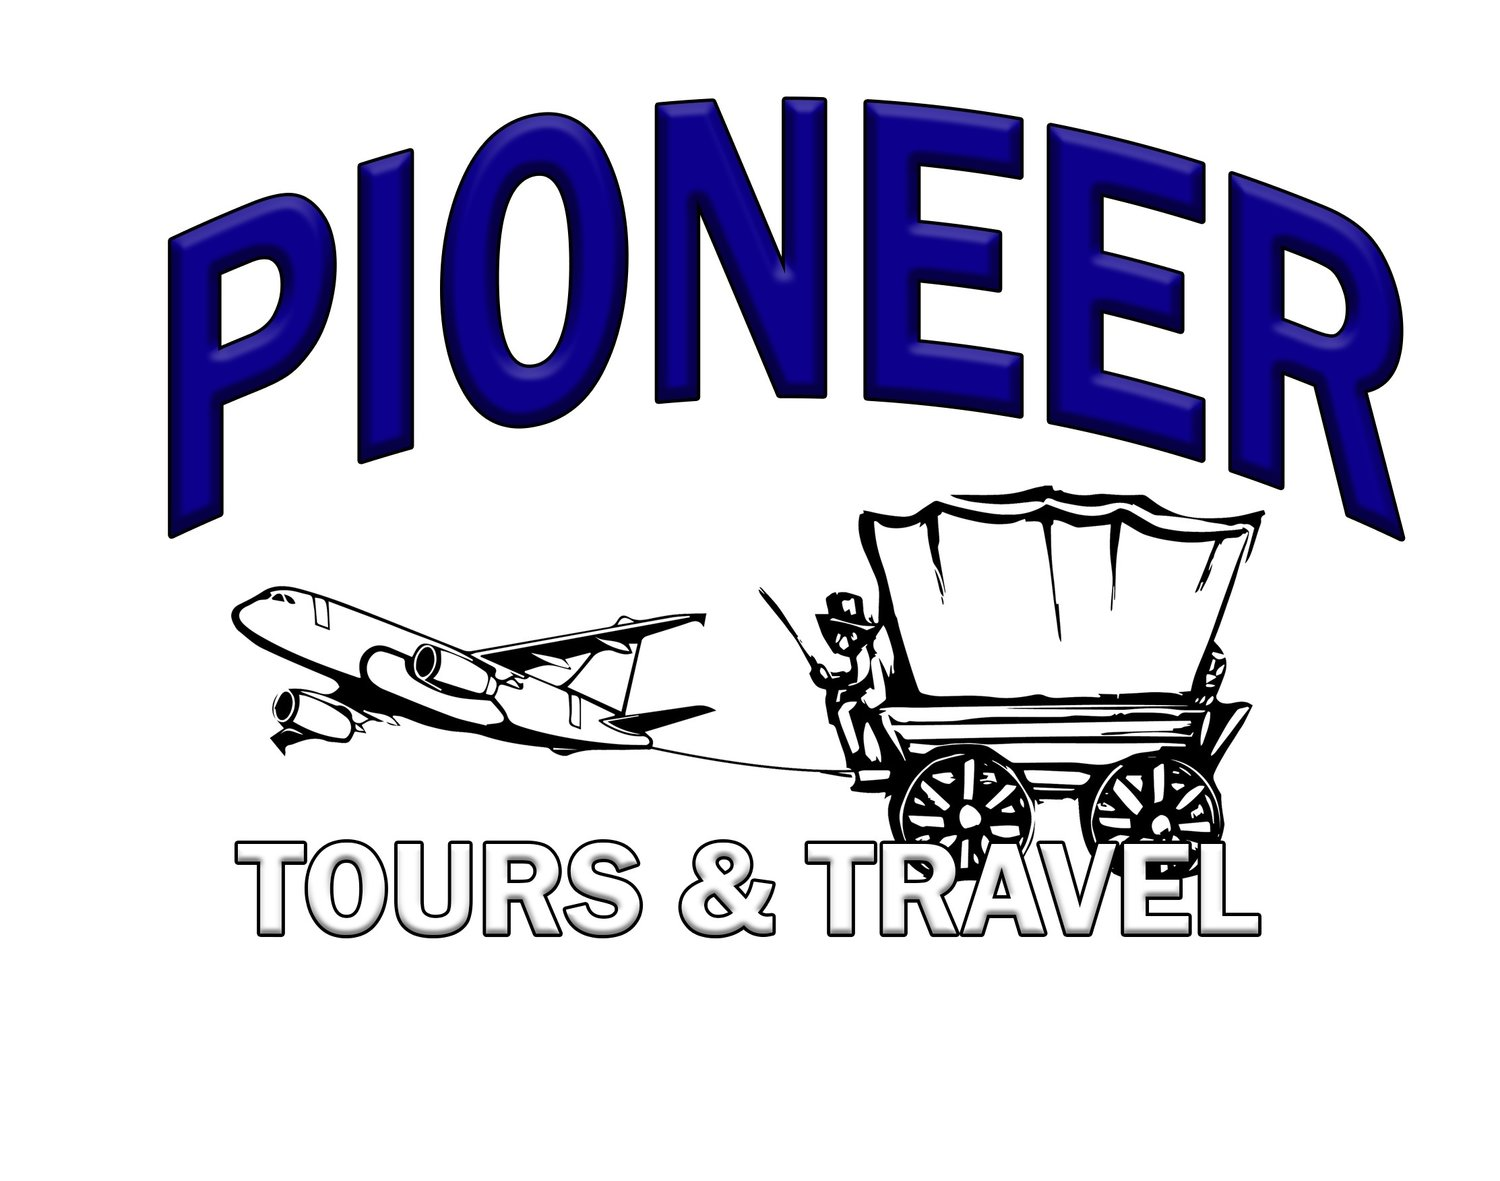 Pioneer Tours & Travel